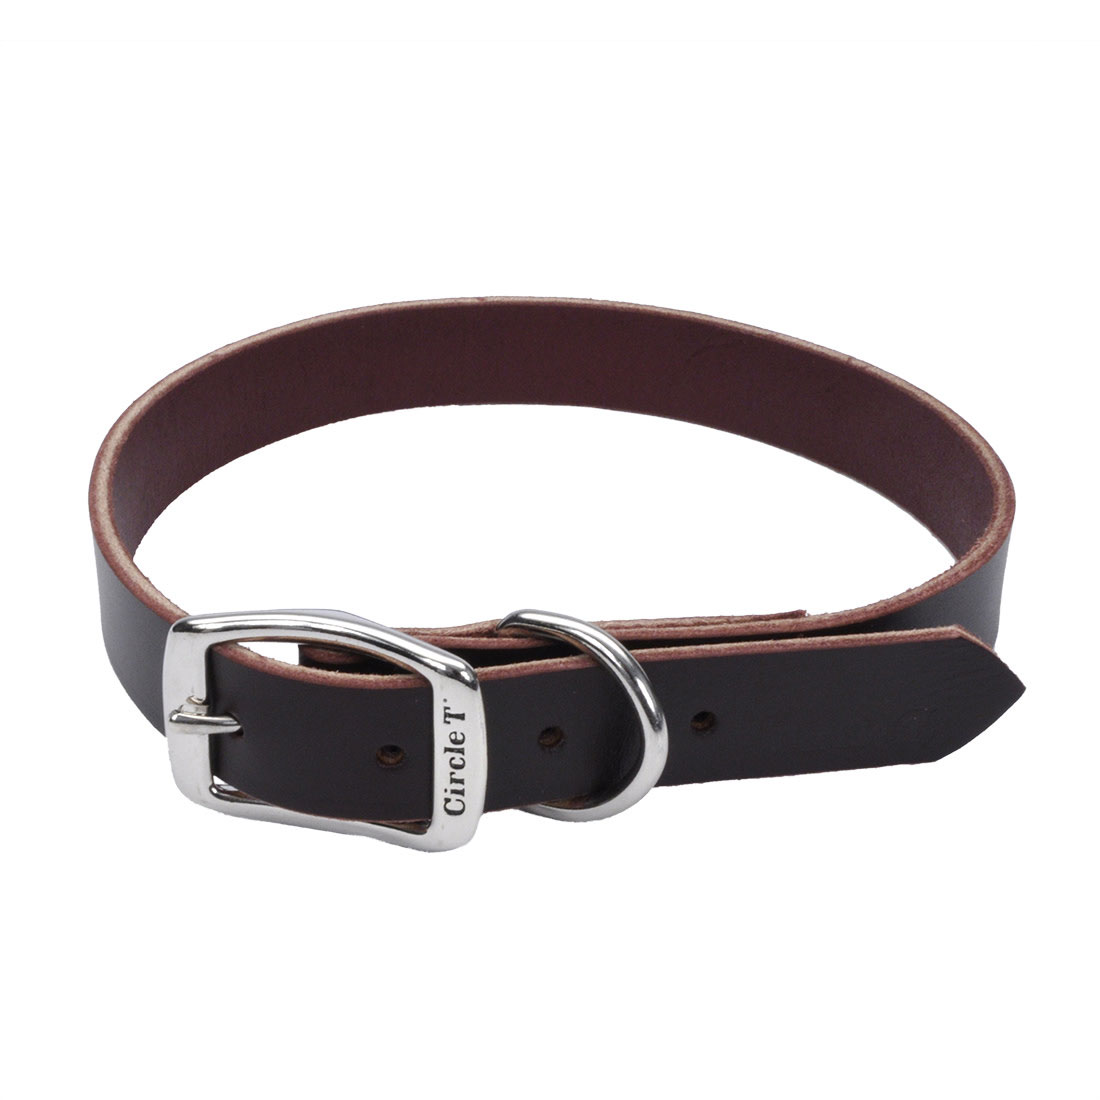 Circle T Latigo Leather Town Dog Collar, 3/4x20-in (Size: 3/4-in x 20-in) Image